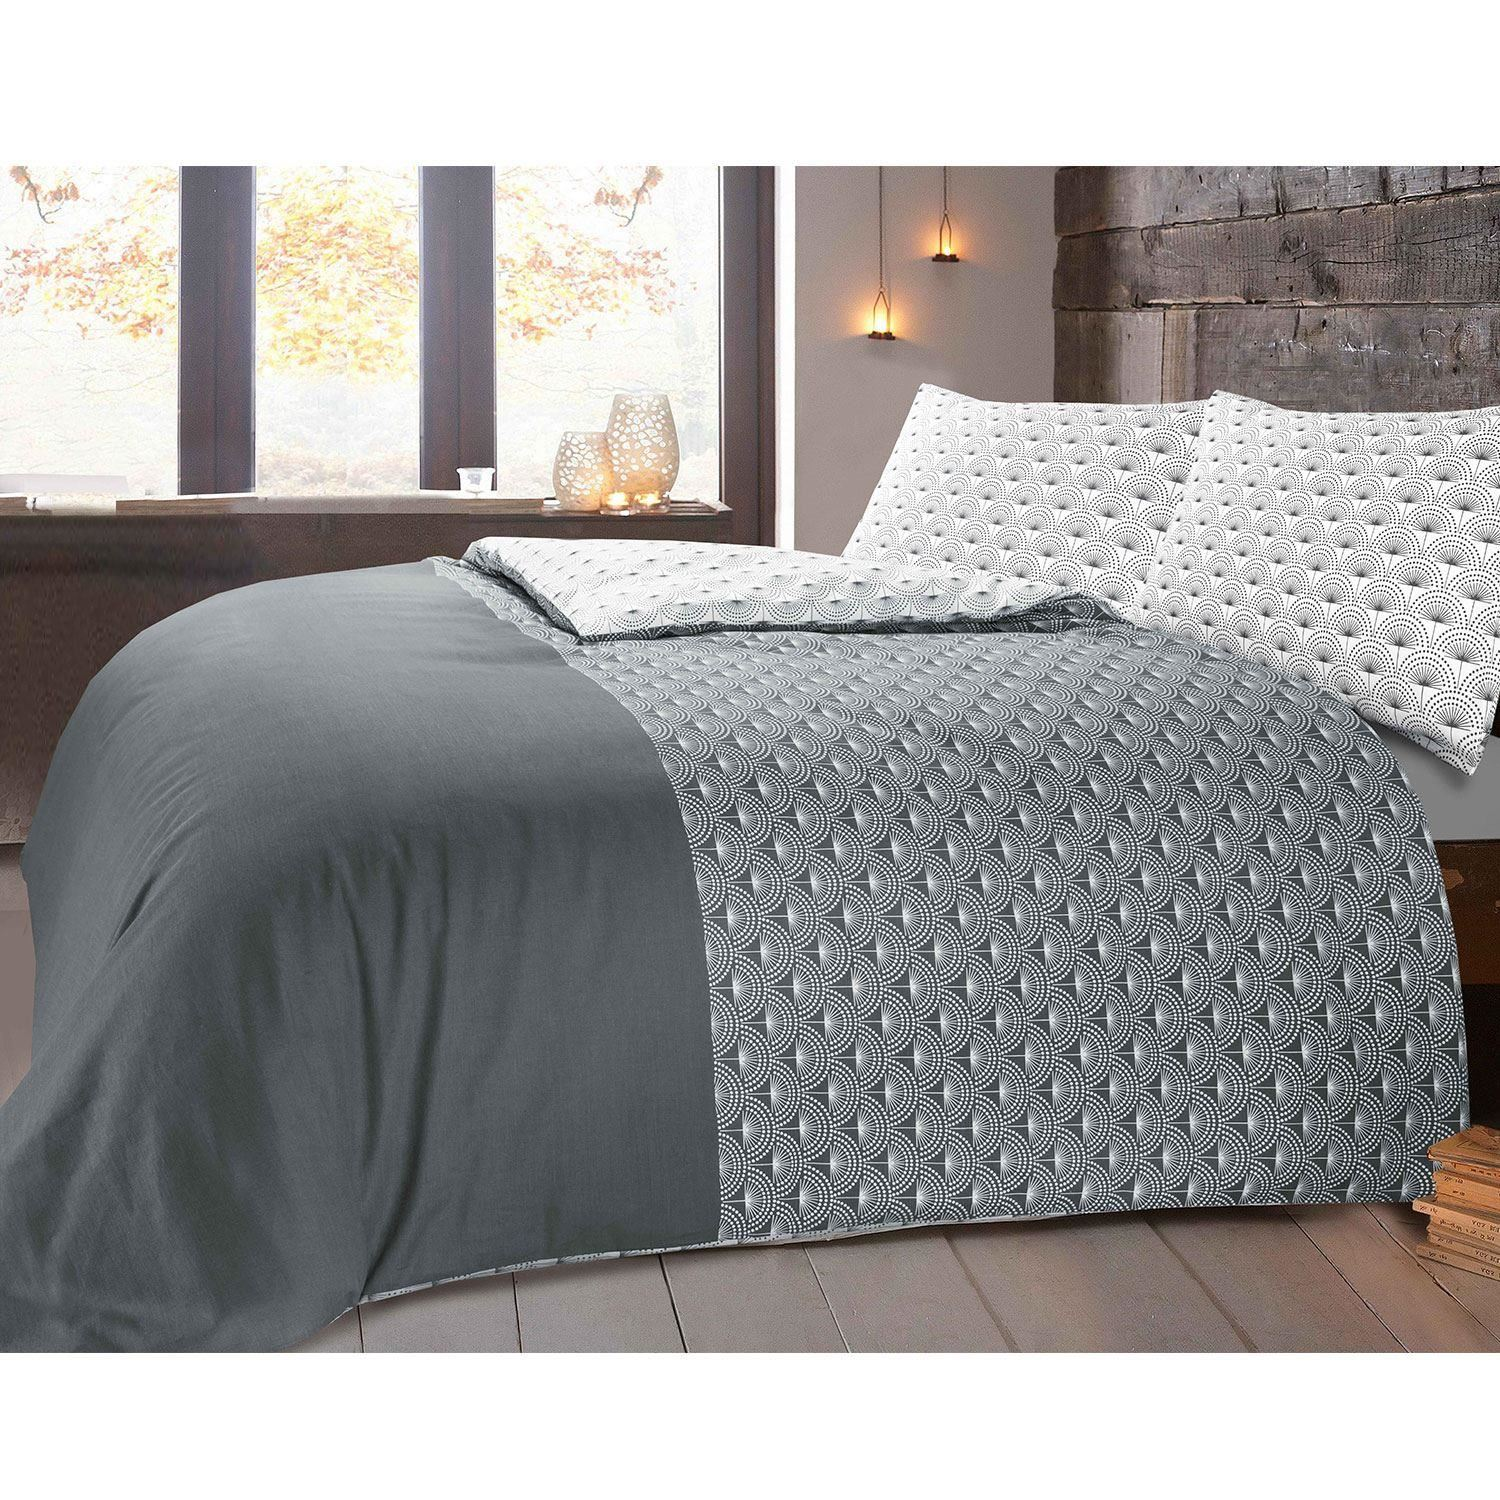 Nimsay-100-Cotton-Duvet-Quilt-Cover-Bedding-Set-Single-Double-Super-King-Sizes thumbnail 9